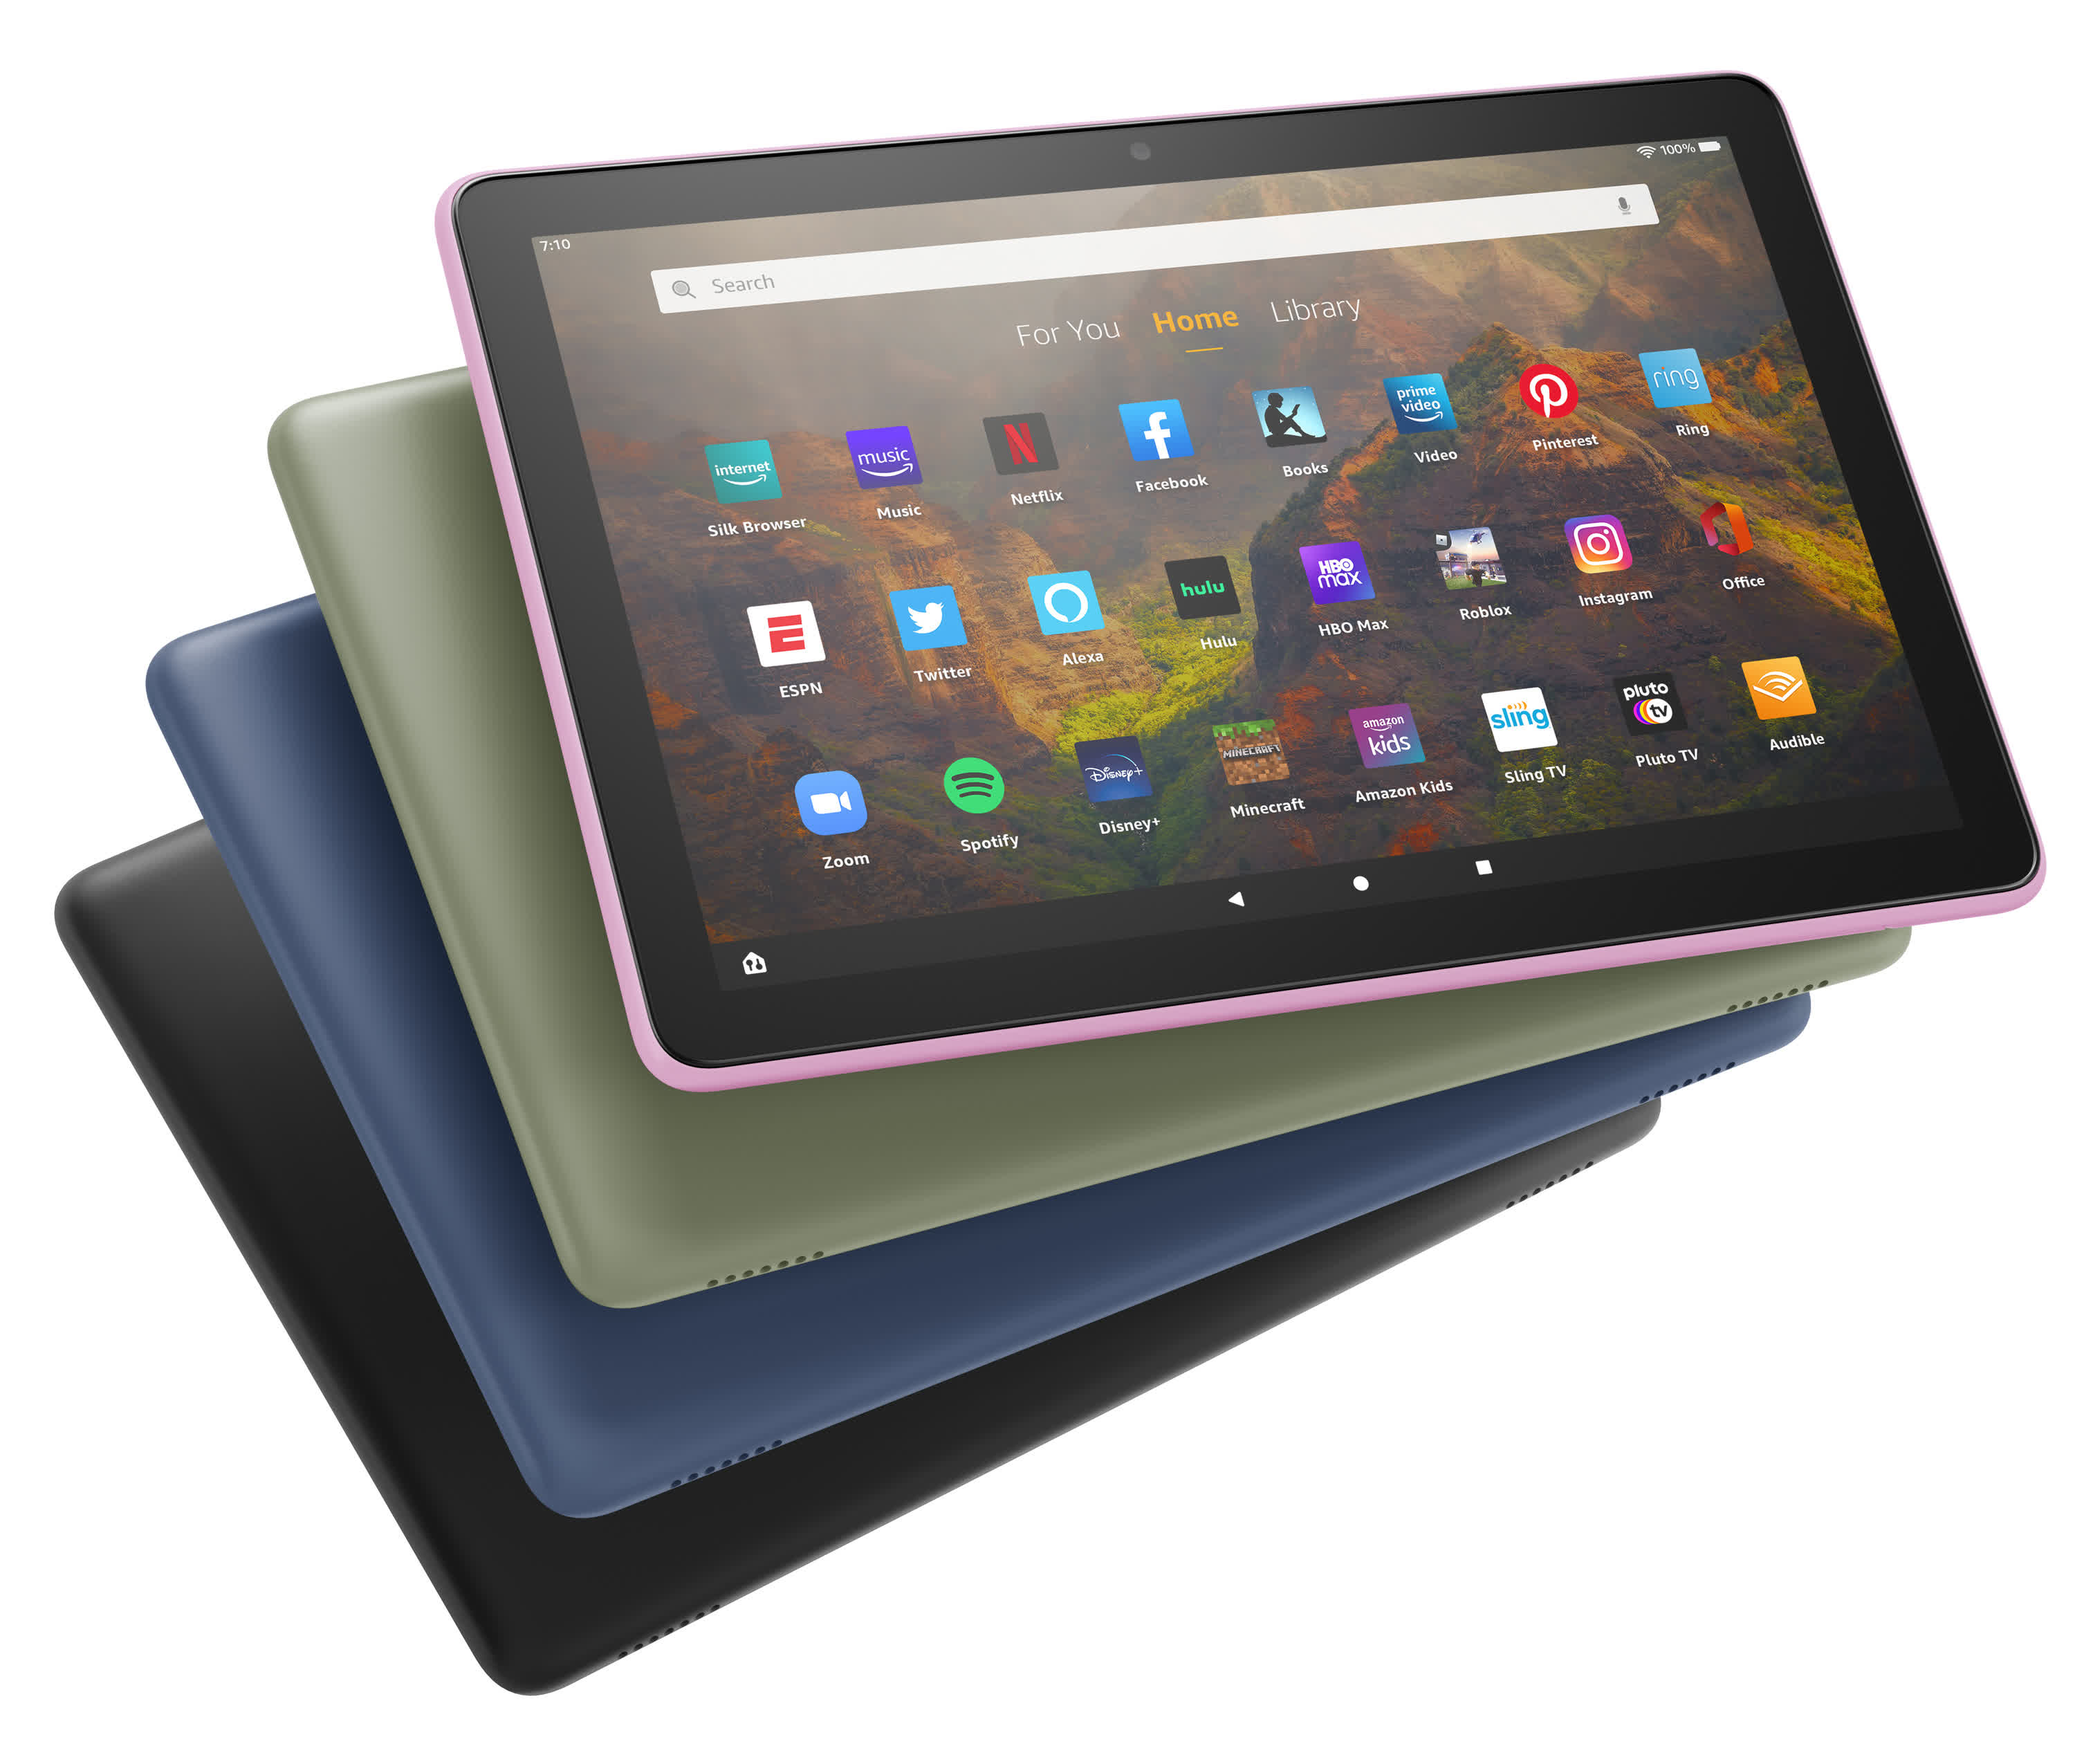 Amazon tablet lineup update brings new Fire HD 10, Fire Kids Pro, and Fire Kids 10 models